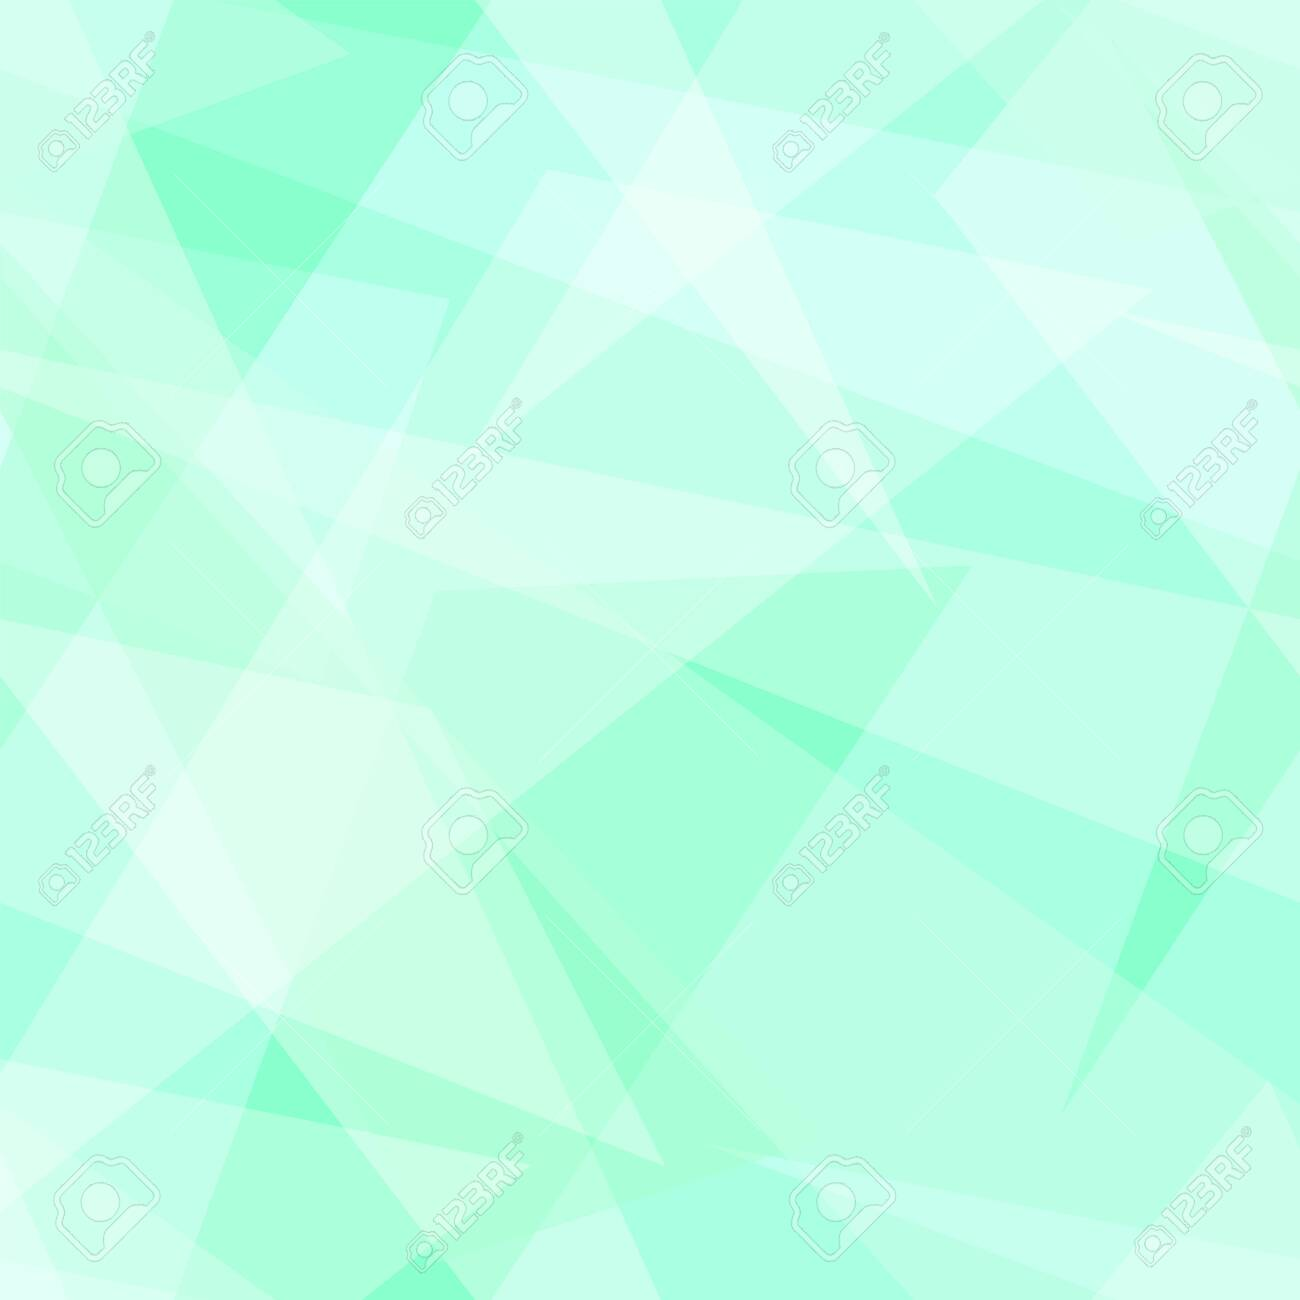 Light green, white transparent triangle shapes. Vector rapport for seamless pattern. Geometric background. Stylized stained glass. Abstract design for wallpaper, wrapping paper, websites. EPS10 illustration - 156255456